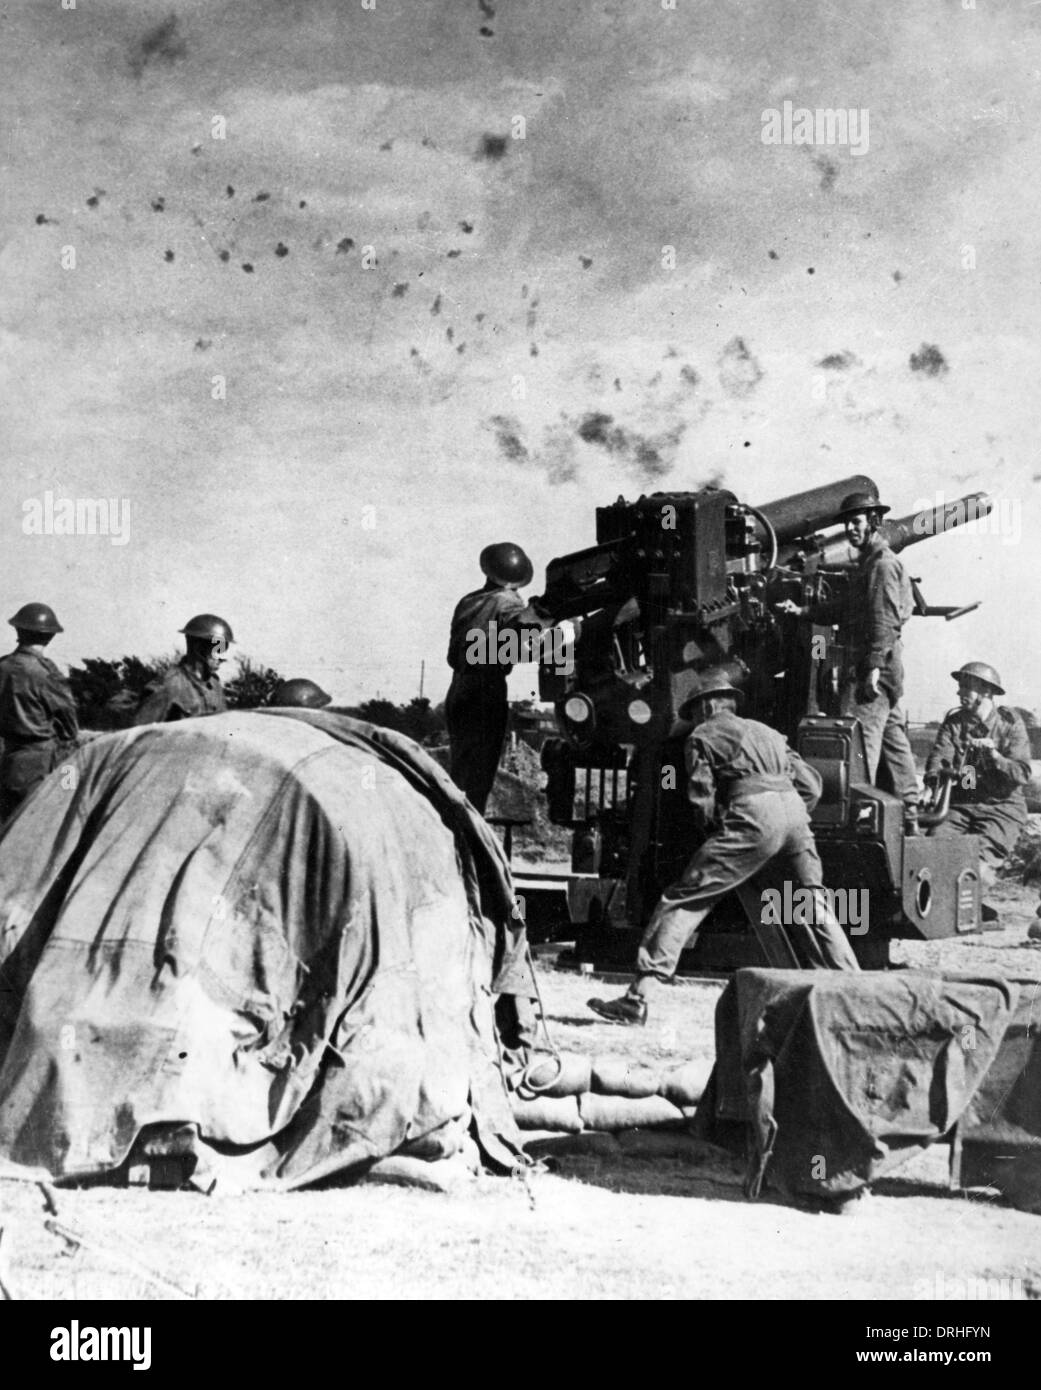 British gunners at work beneath a flak-filled sky, WW2 - Stock Image